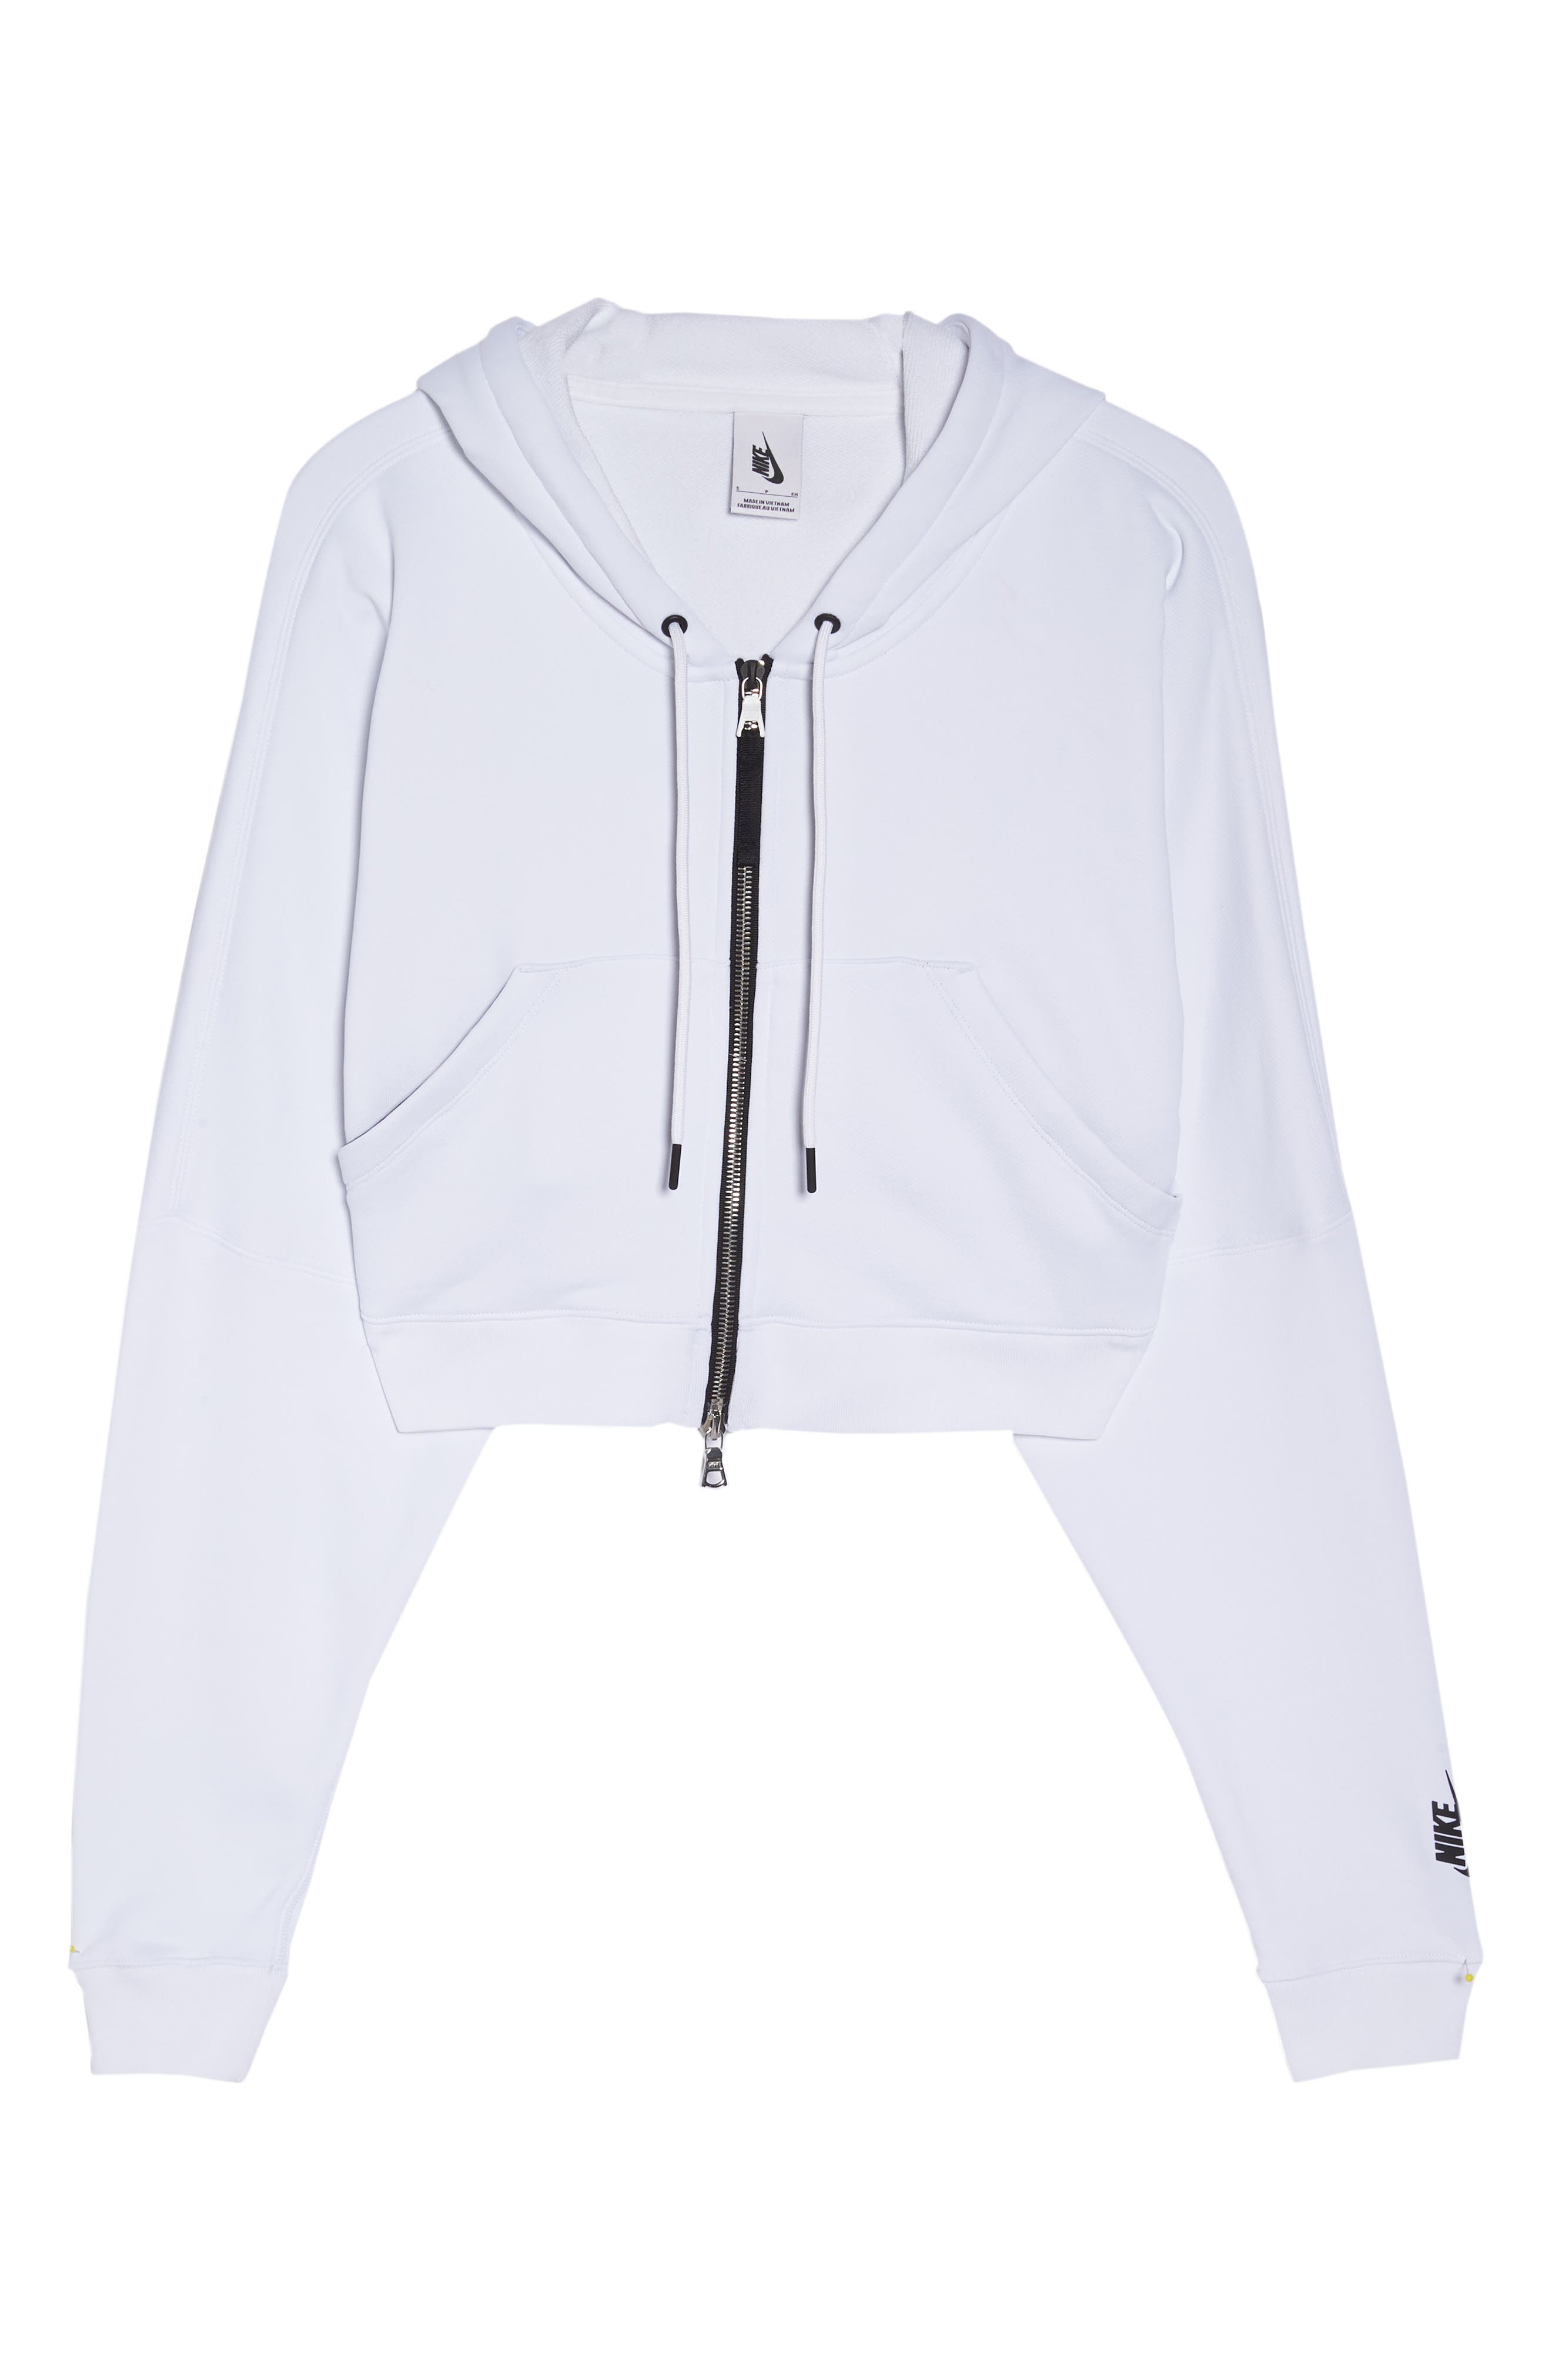 NikeLab Collection Terry Zip Hoodie,                             Alternate thumbnail 7, color,                             100